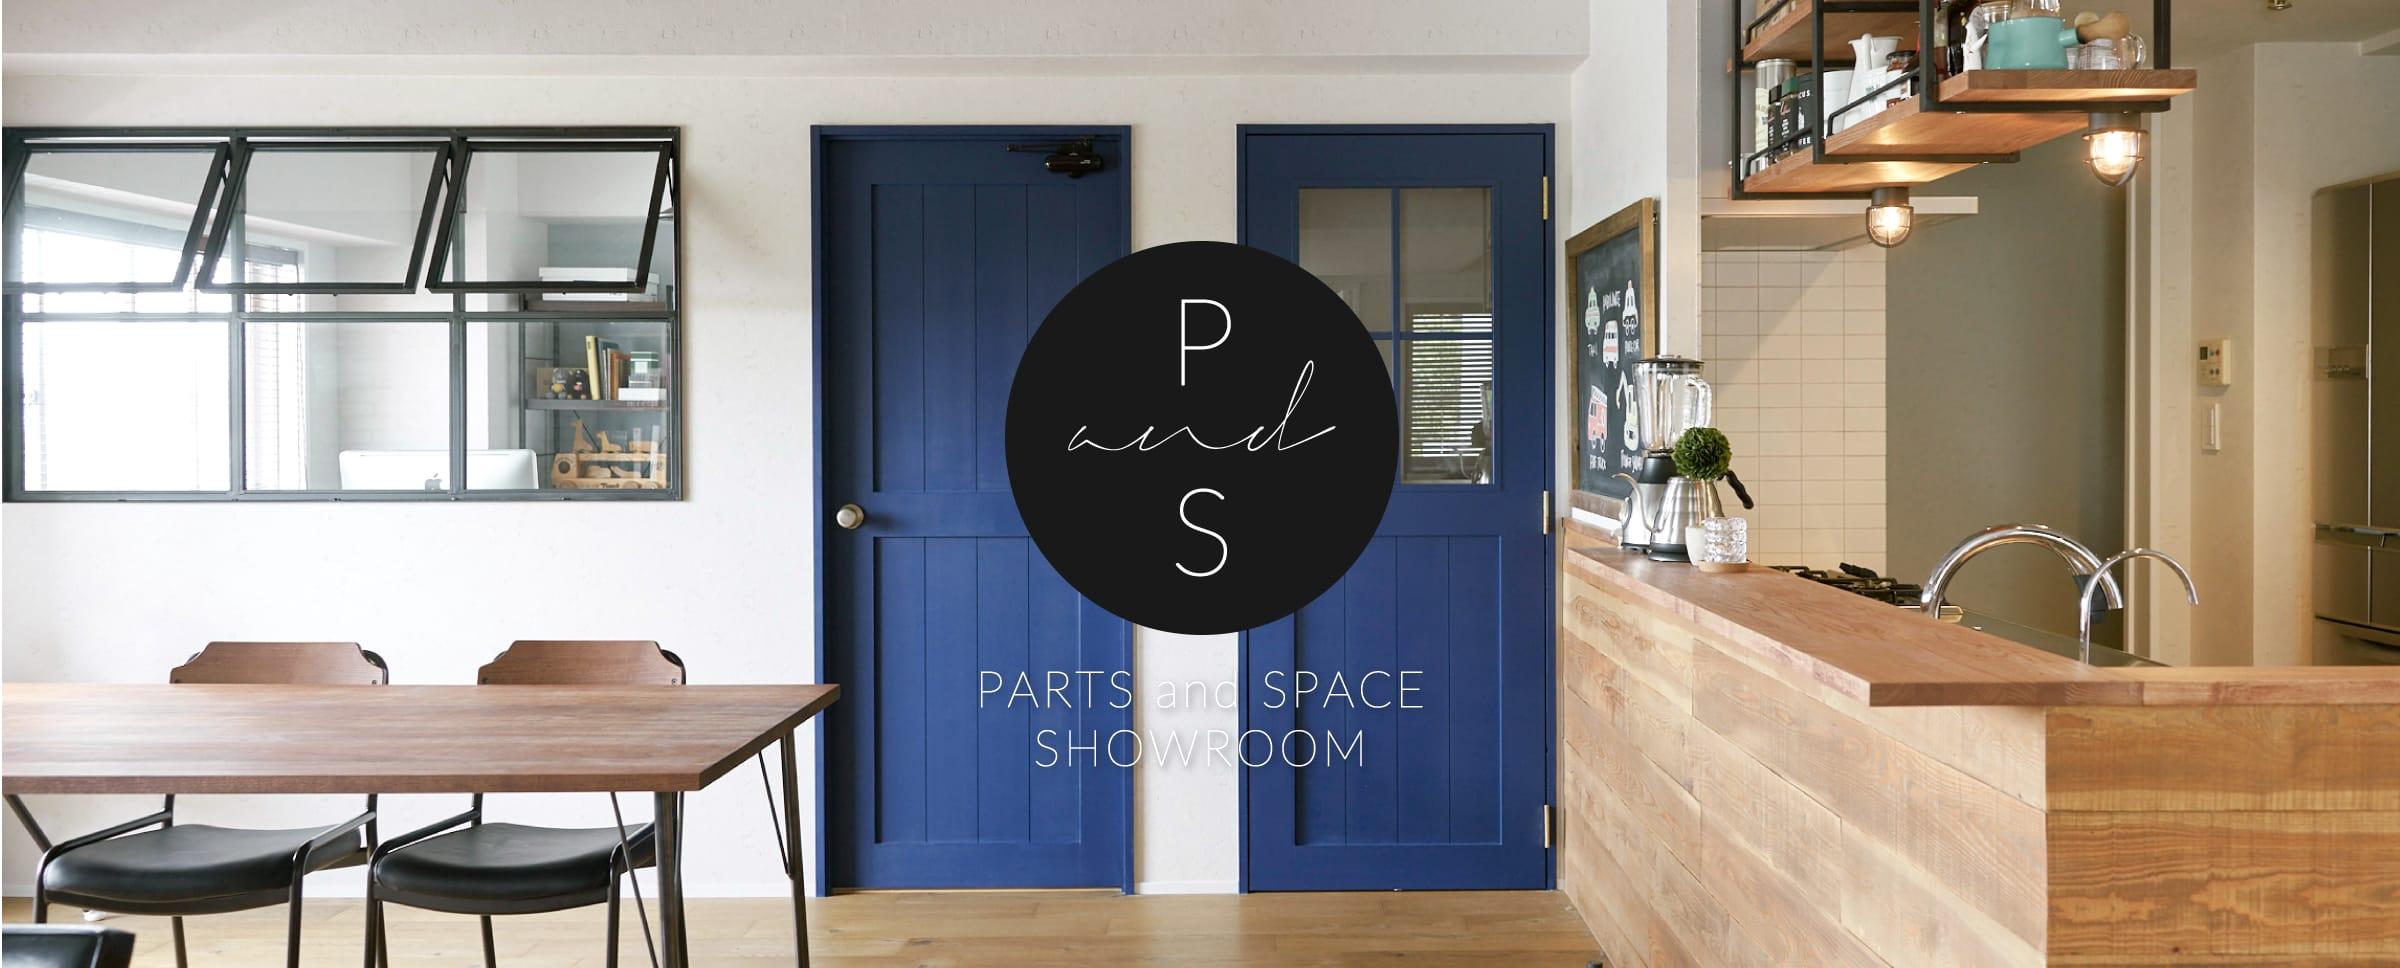 PARTS and SPACE SHOWROOM